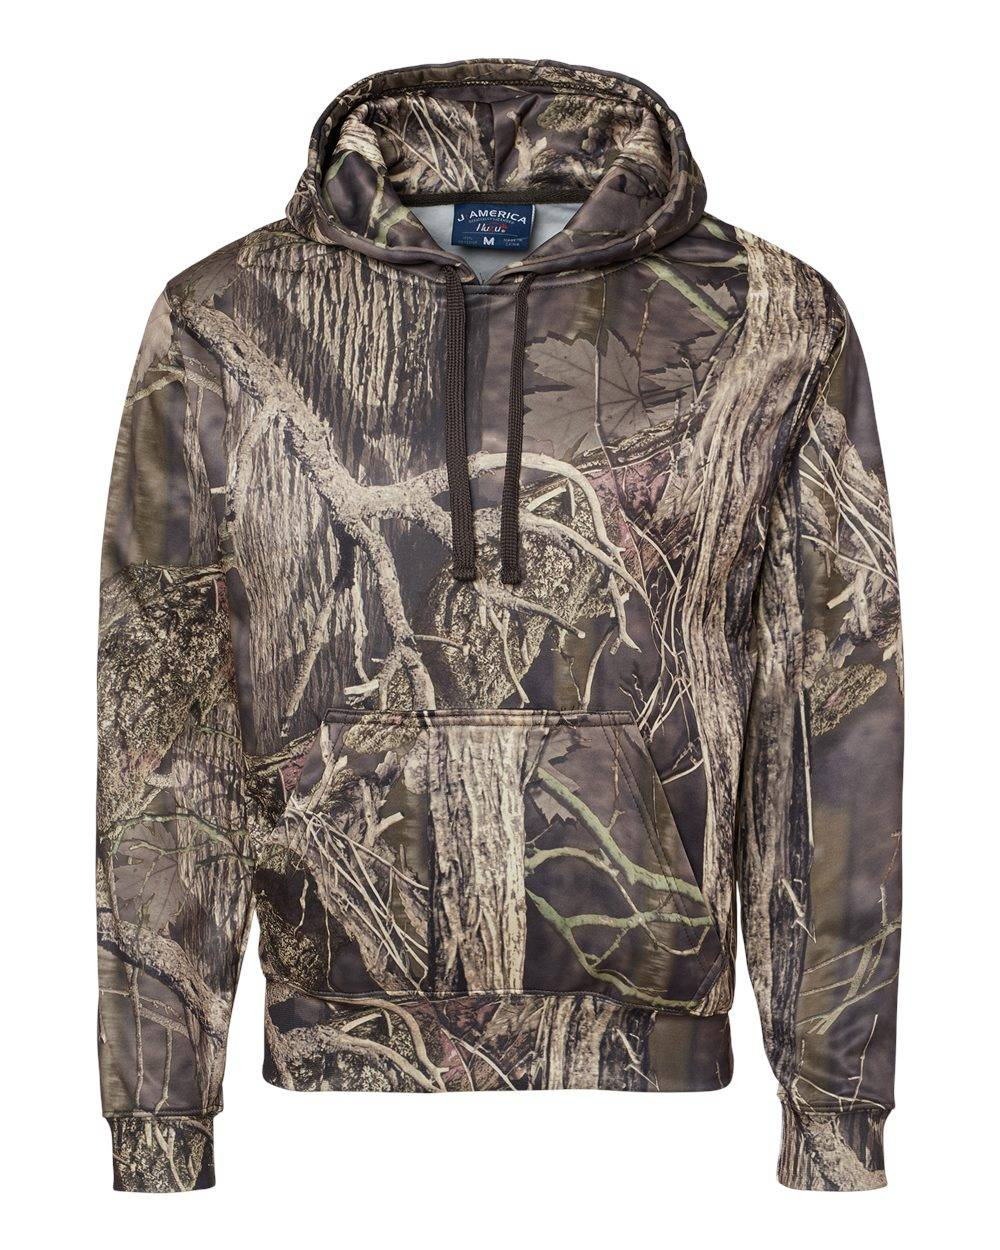 J. America - Polyester Tailgate Hooded Sweatshirt - 8615 - Outdoor Camo - Medium